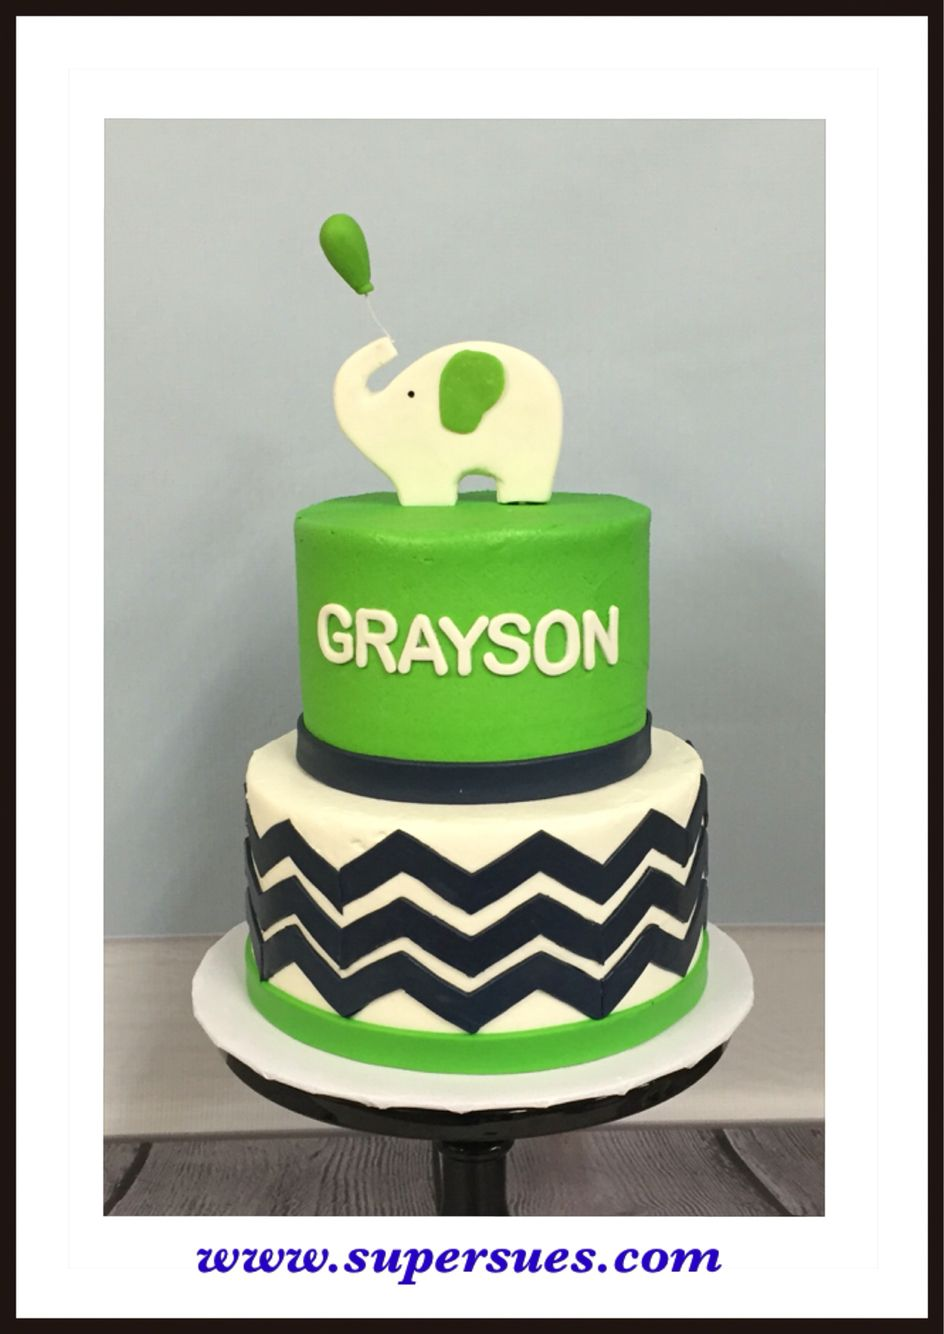 Tiered cake for first bother day Lime green accents with Navy Blue